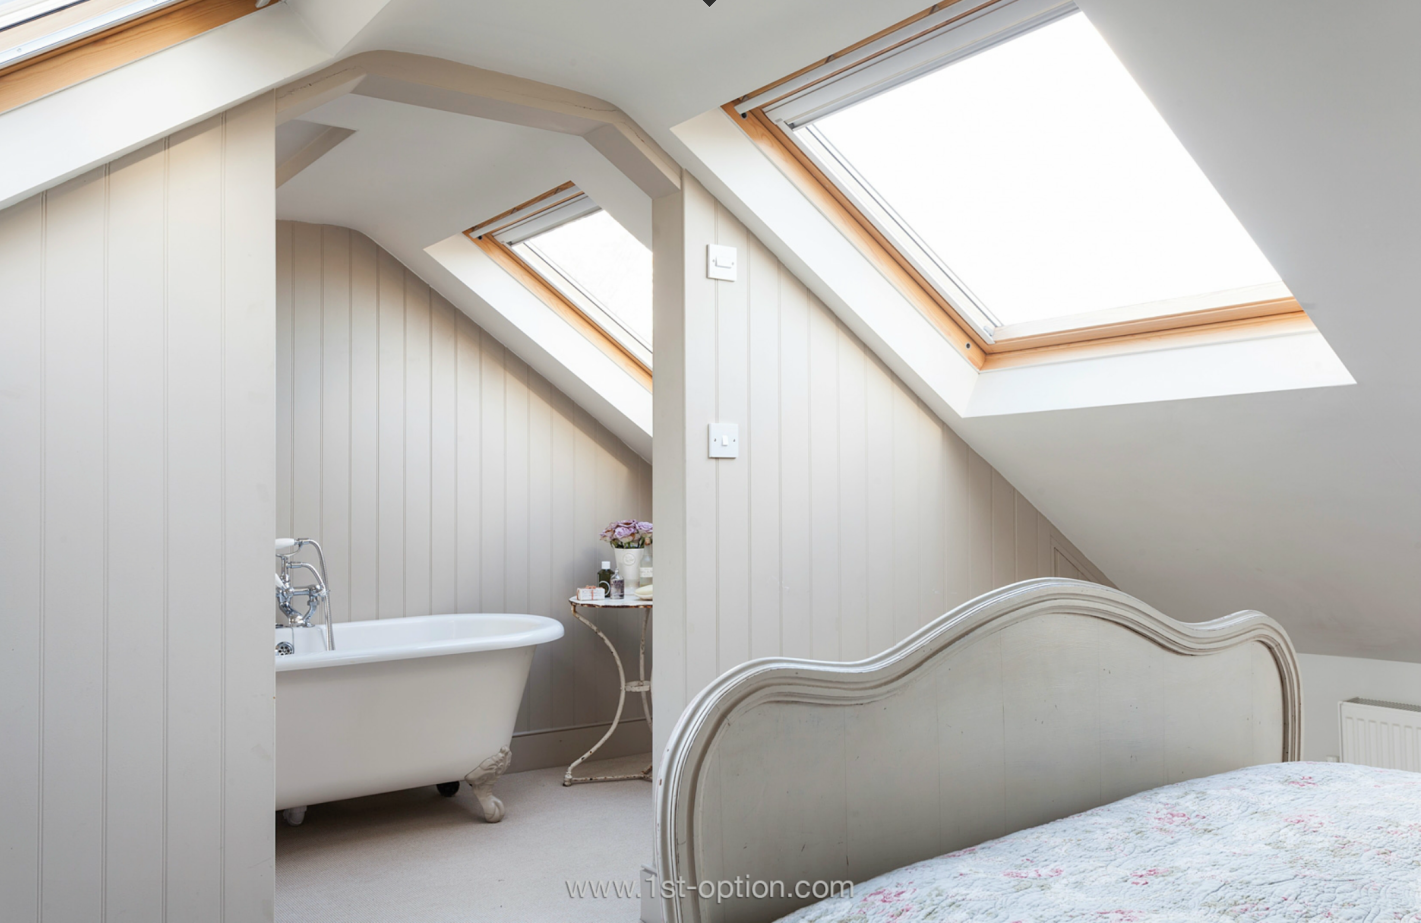 Loft conversion bedroom with en suite | The best attic home design ideas! See more inspiring images on our boards at ... & Loft conversion bedroom with en suite | The best attic home design ...